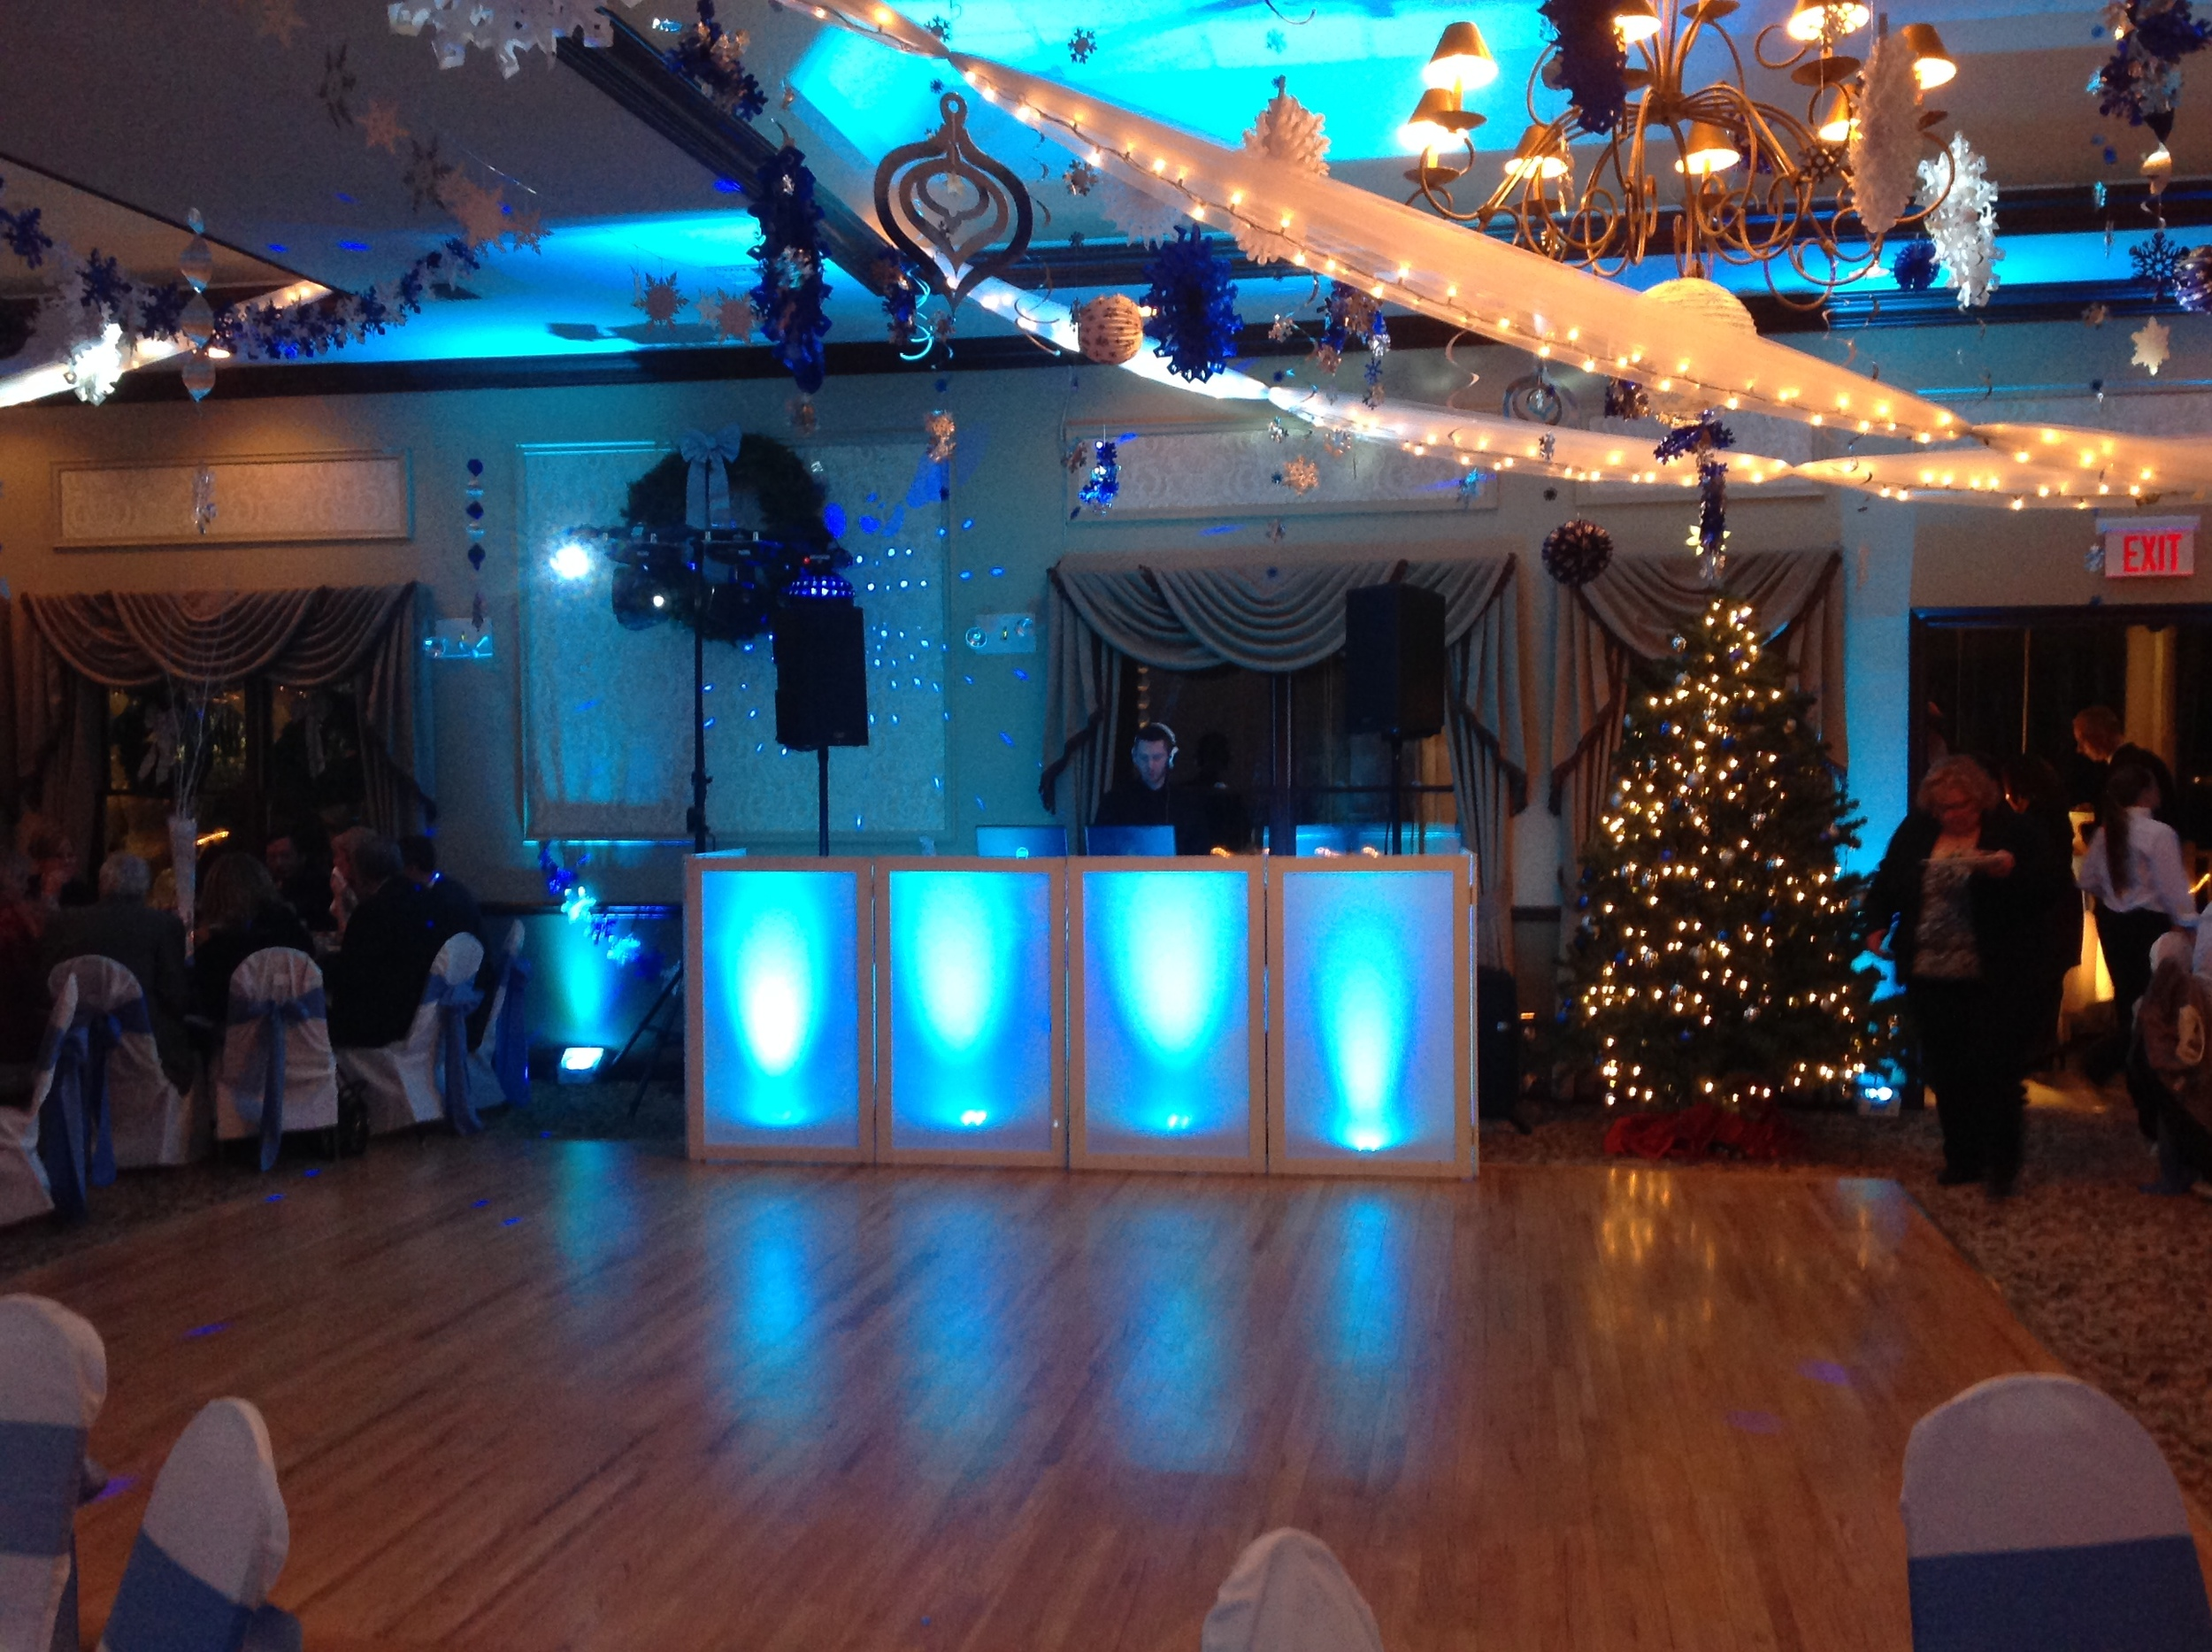 VENUE STANTON RIDGE HOLIDAY THEME2.JPG